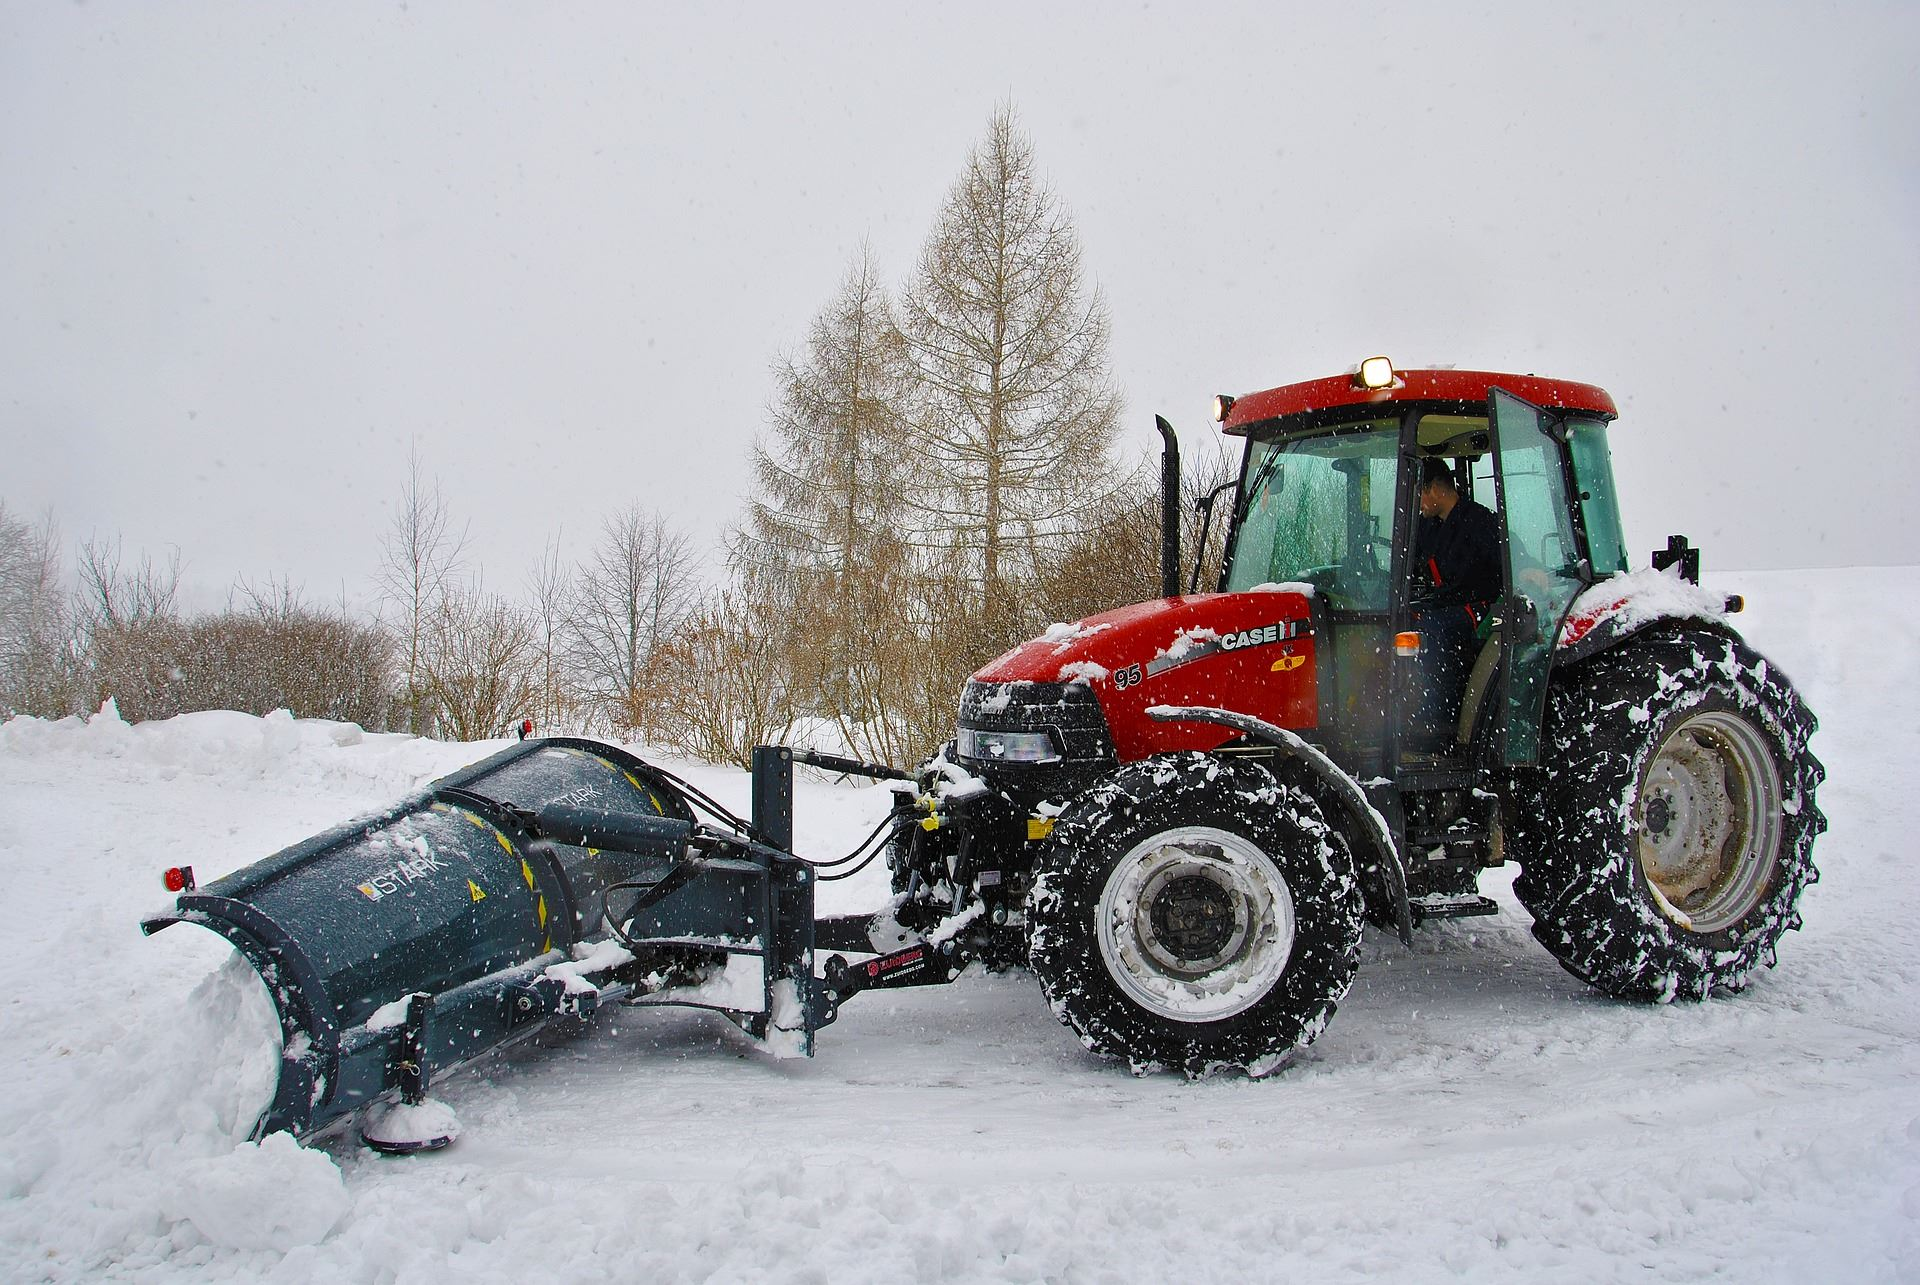 Tractor with snow plow attachment plowing snow image